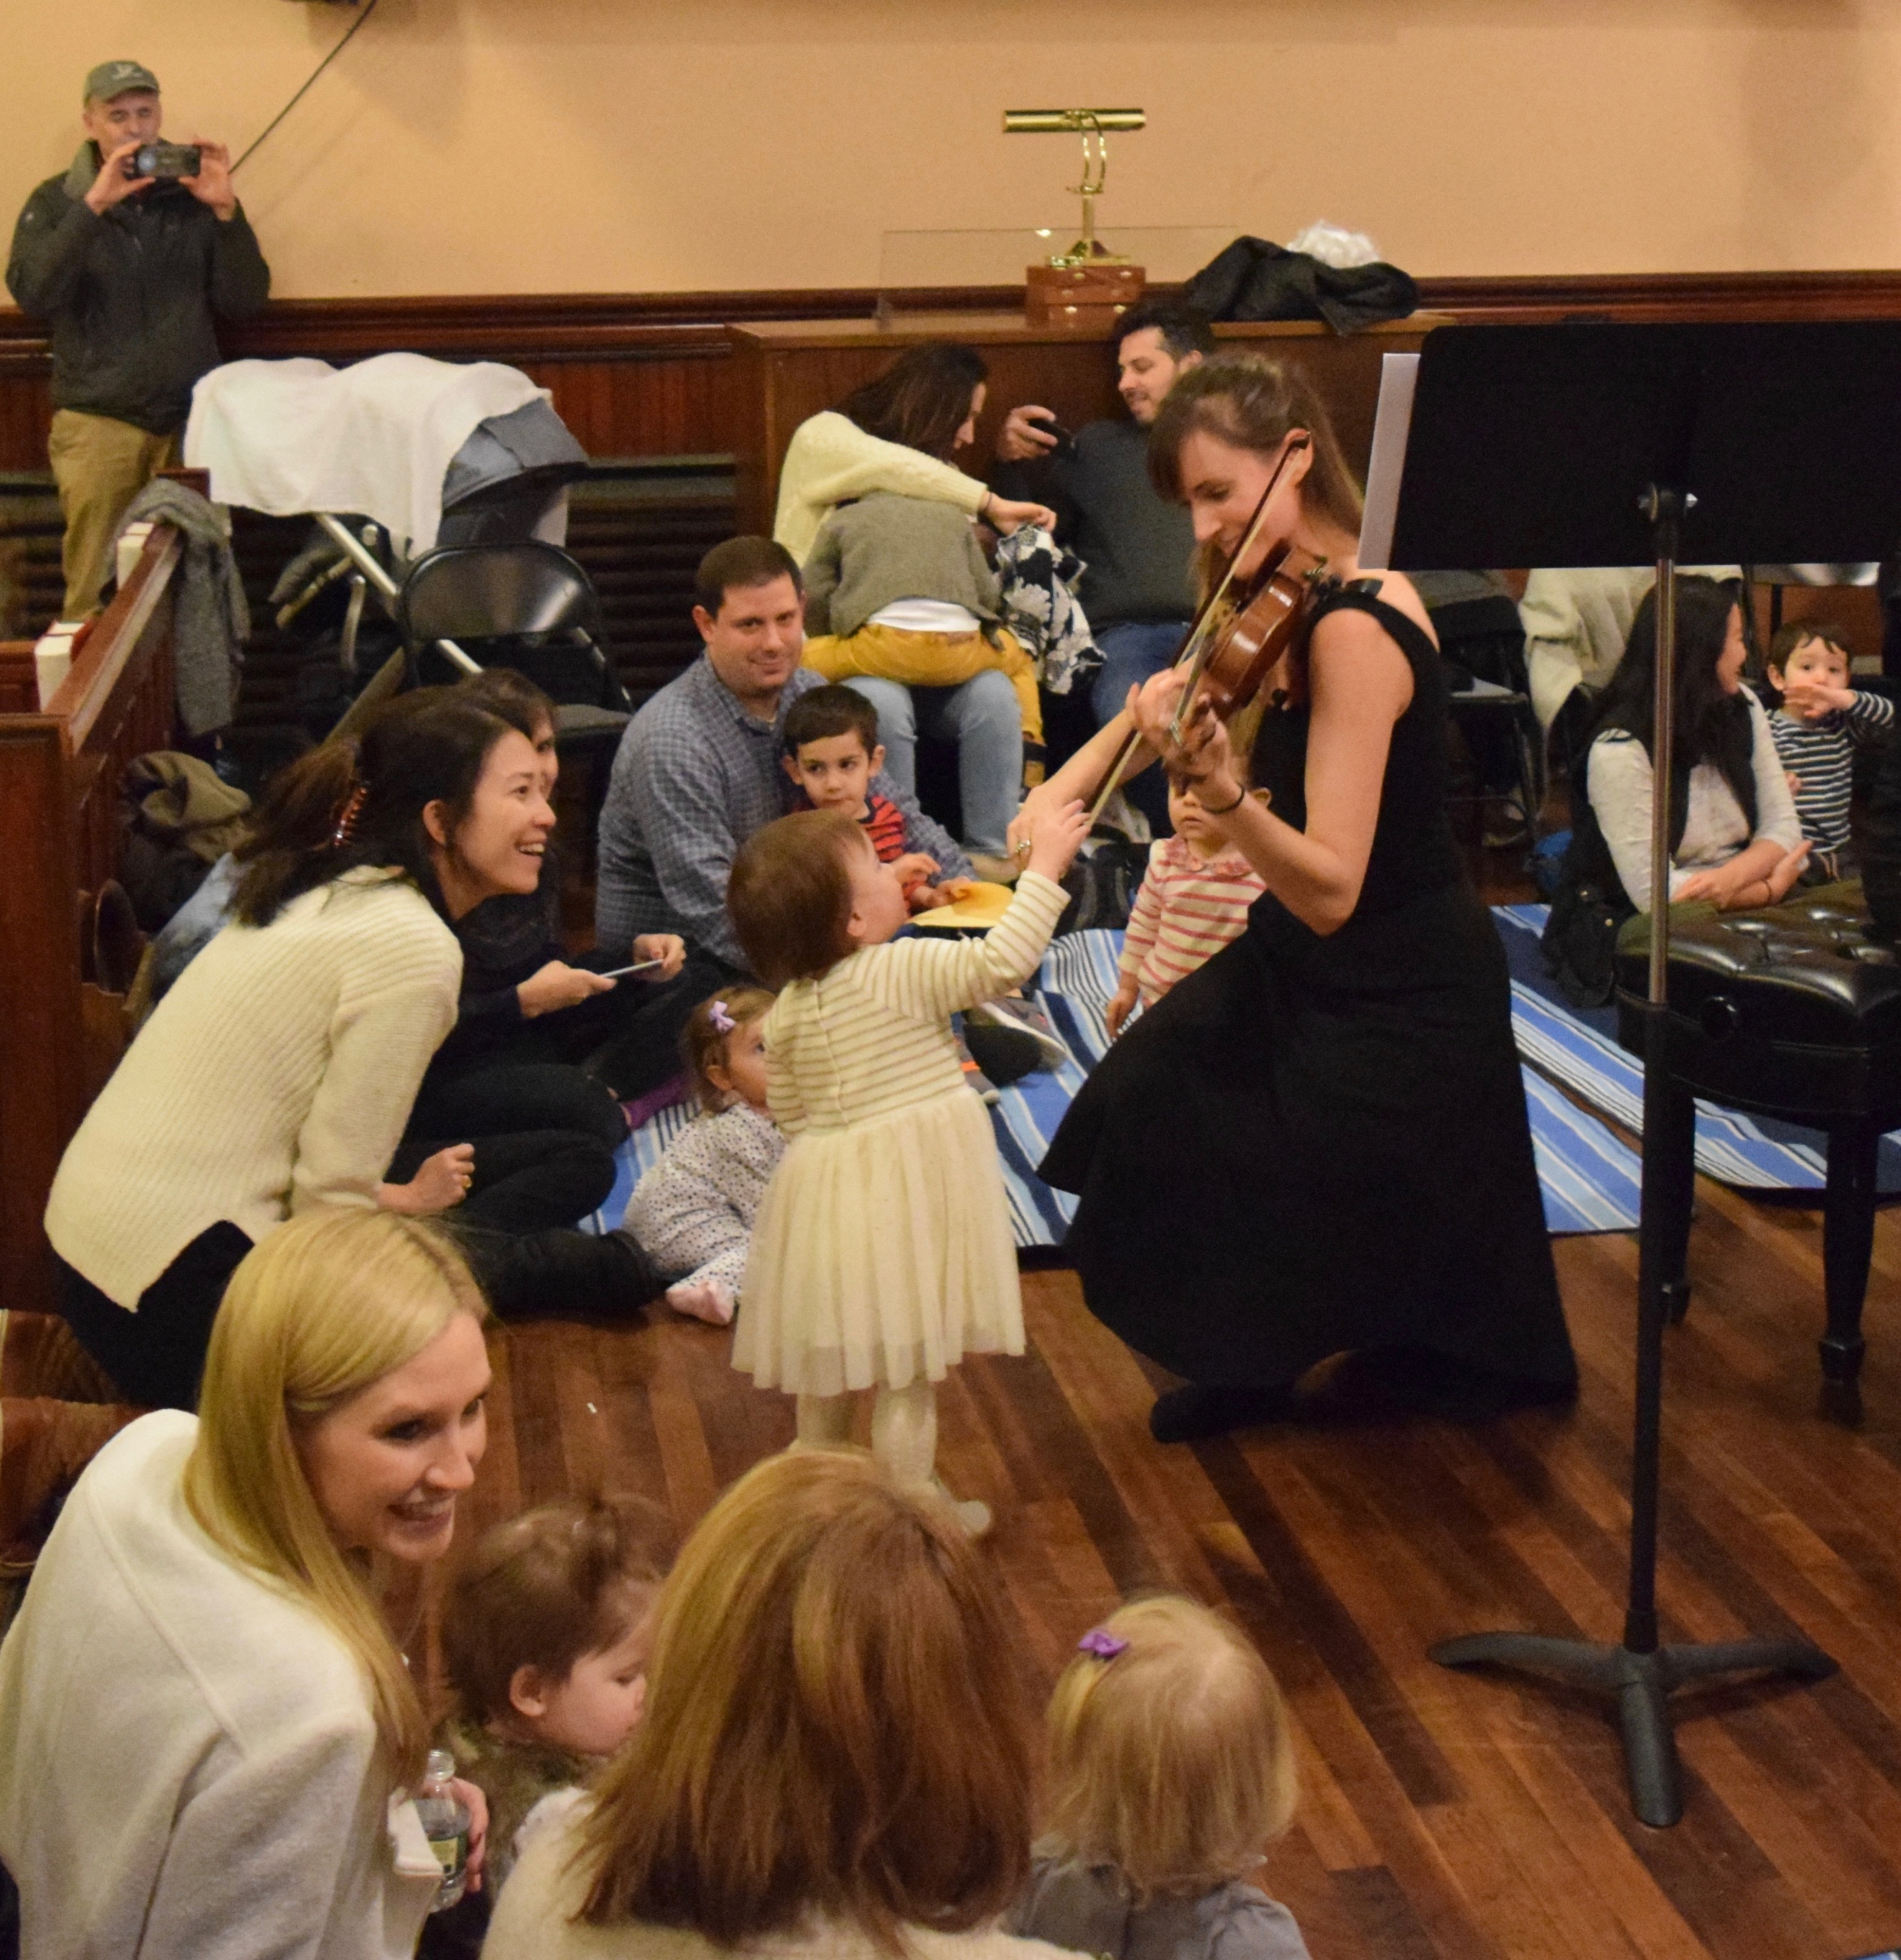 Mozart for Munchkins at Steinway Hall